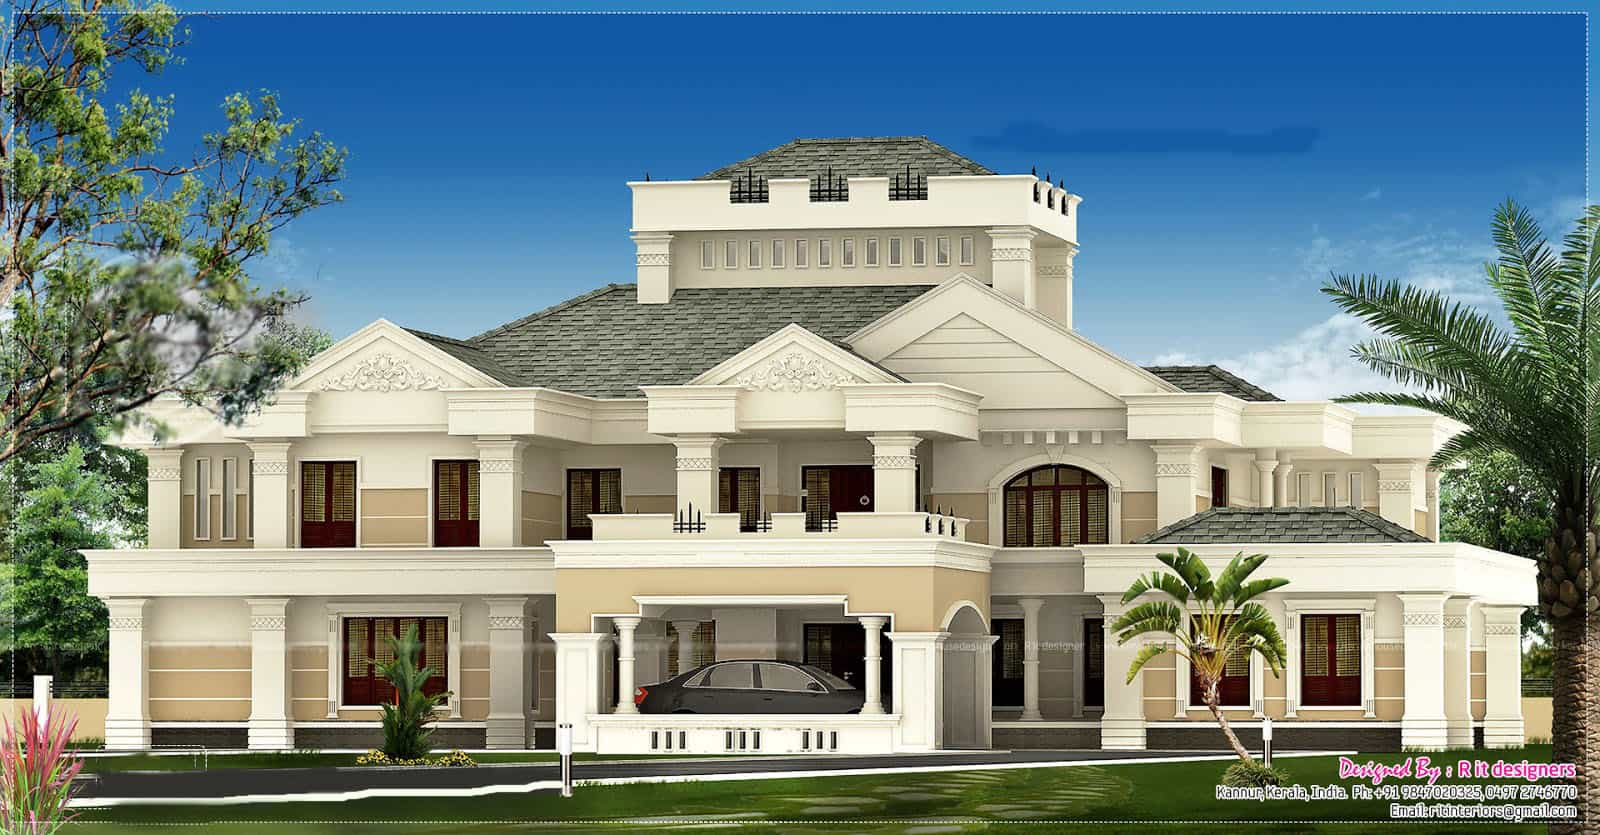 Luxurious kerala bungalow design at 5676 for Good house photos